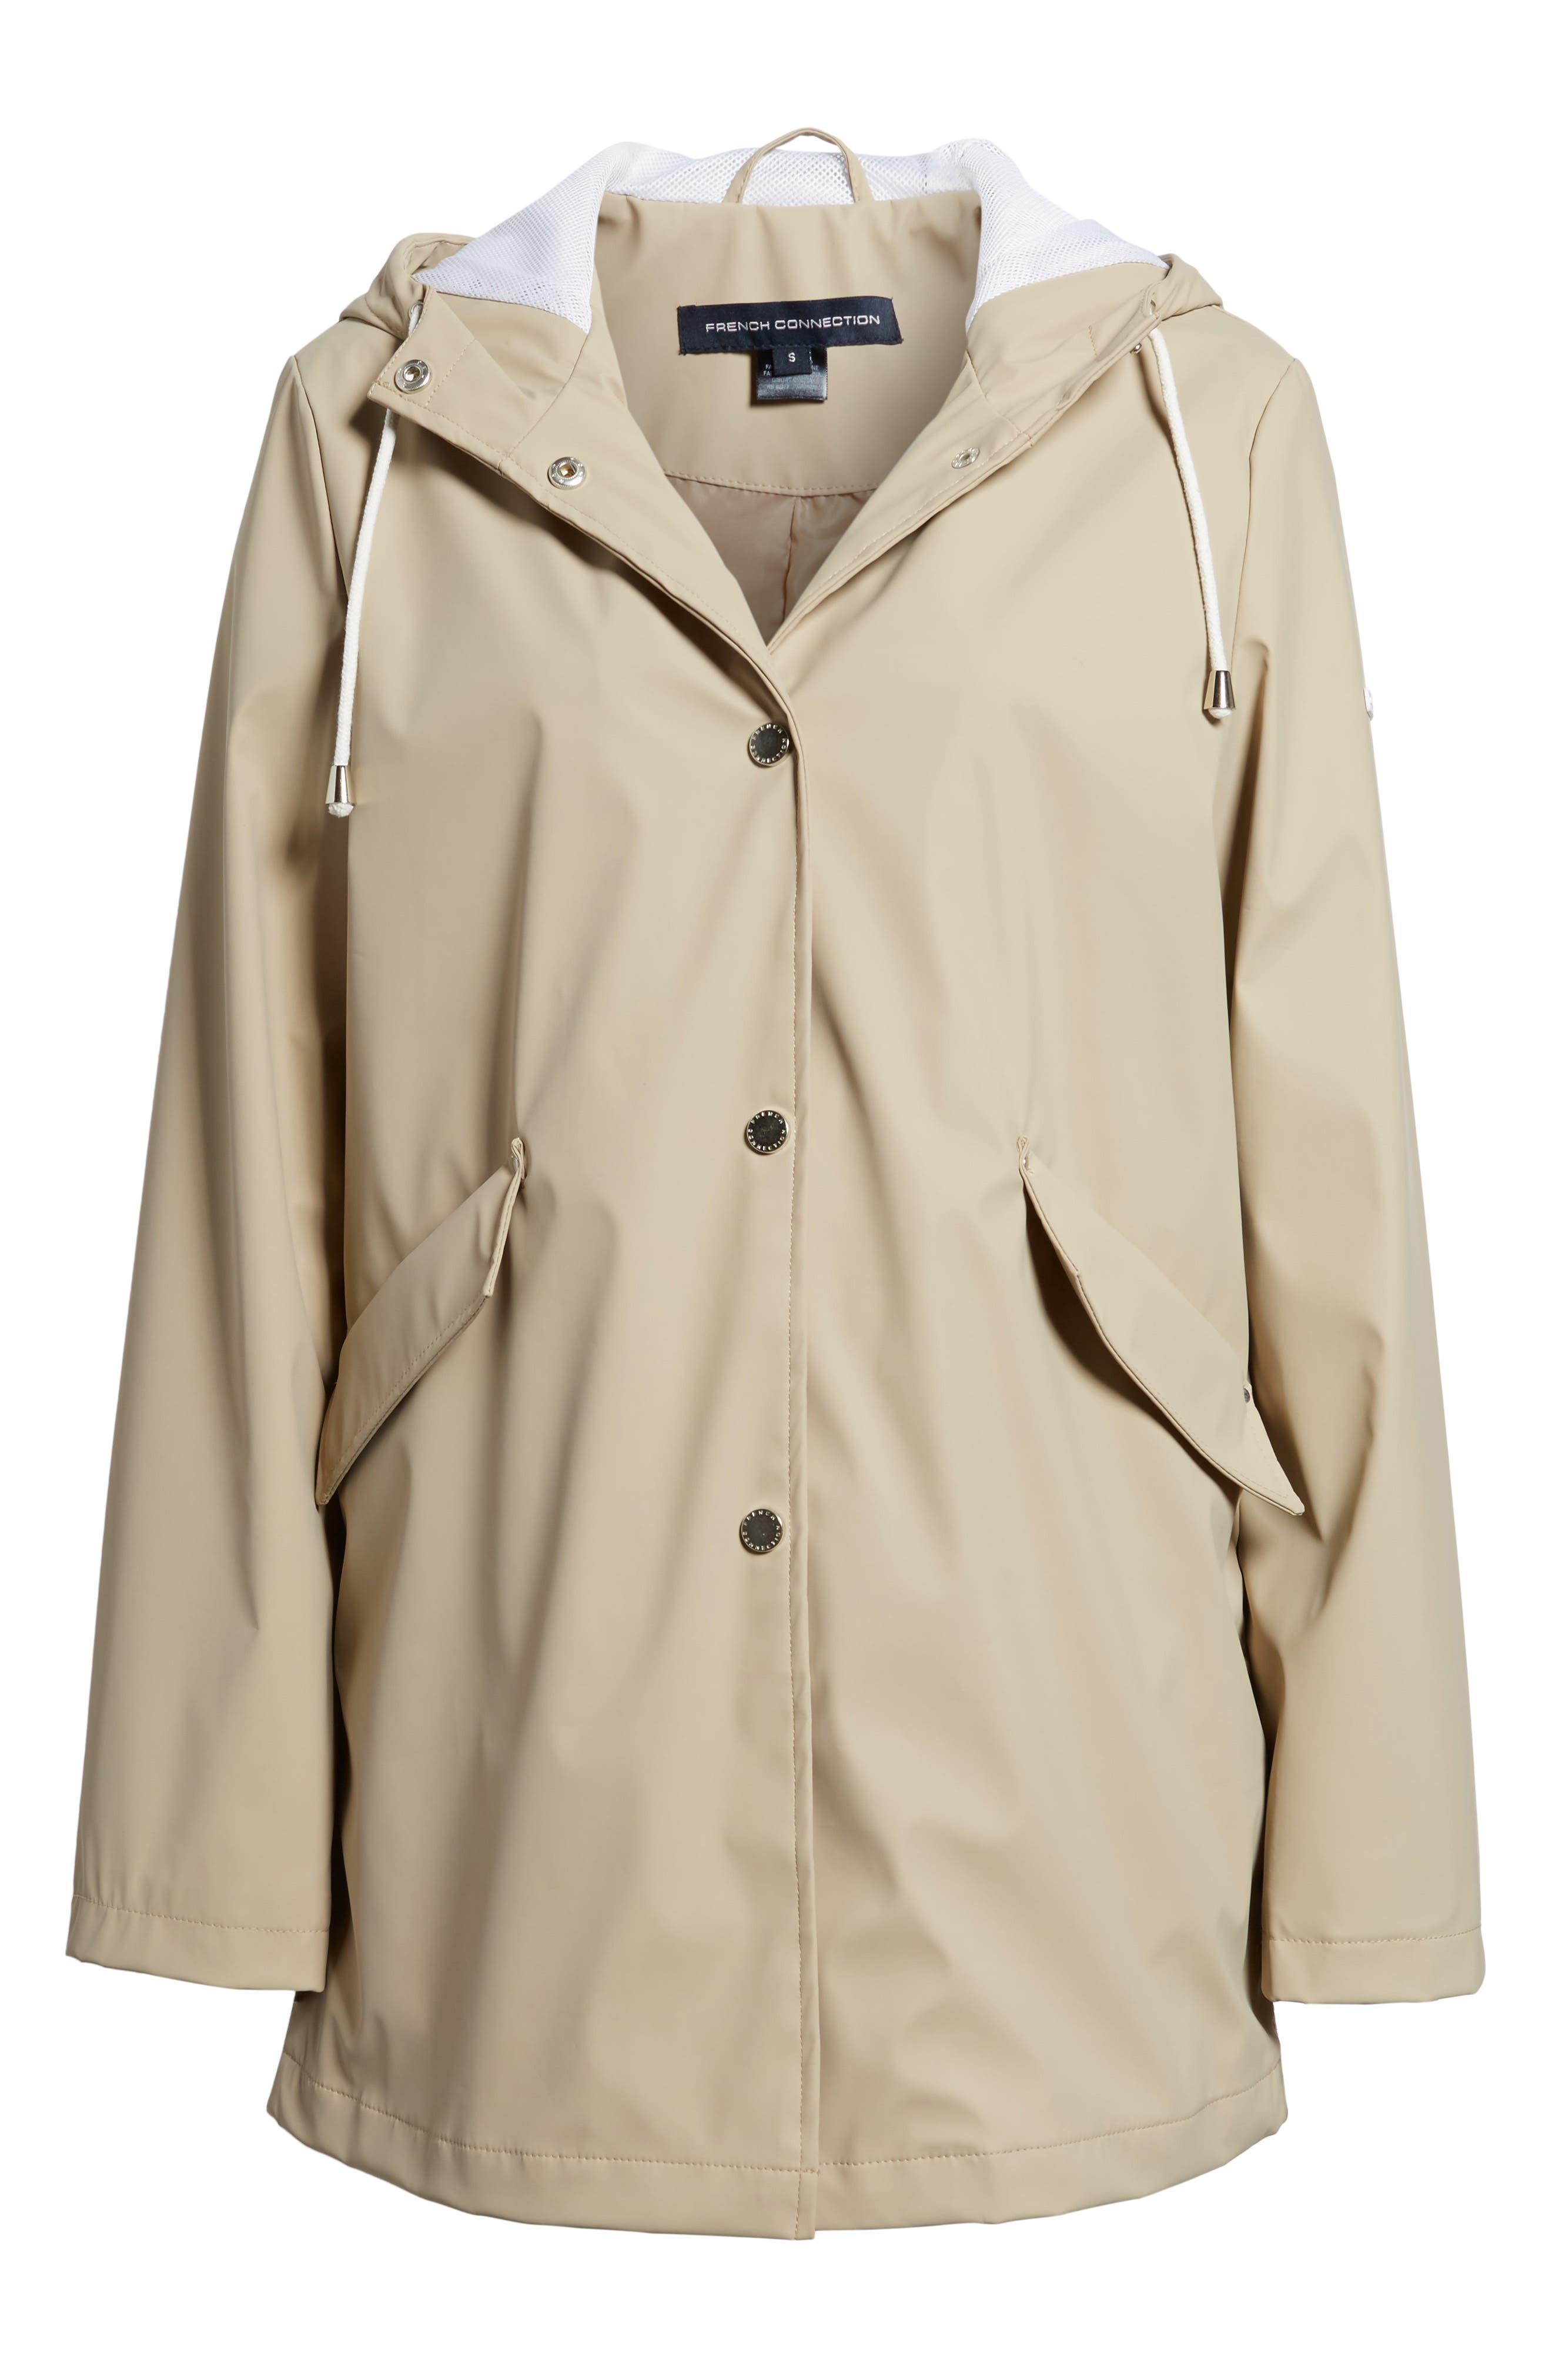 FRENCH CONNECTION, Side Zip Hem Hooded Slicker, Alternate thumbnail 5, color, 252